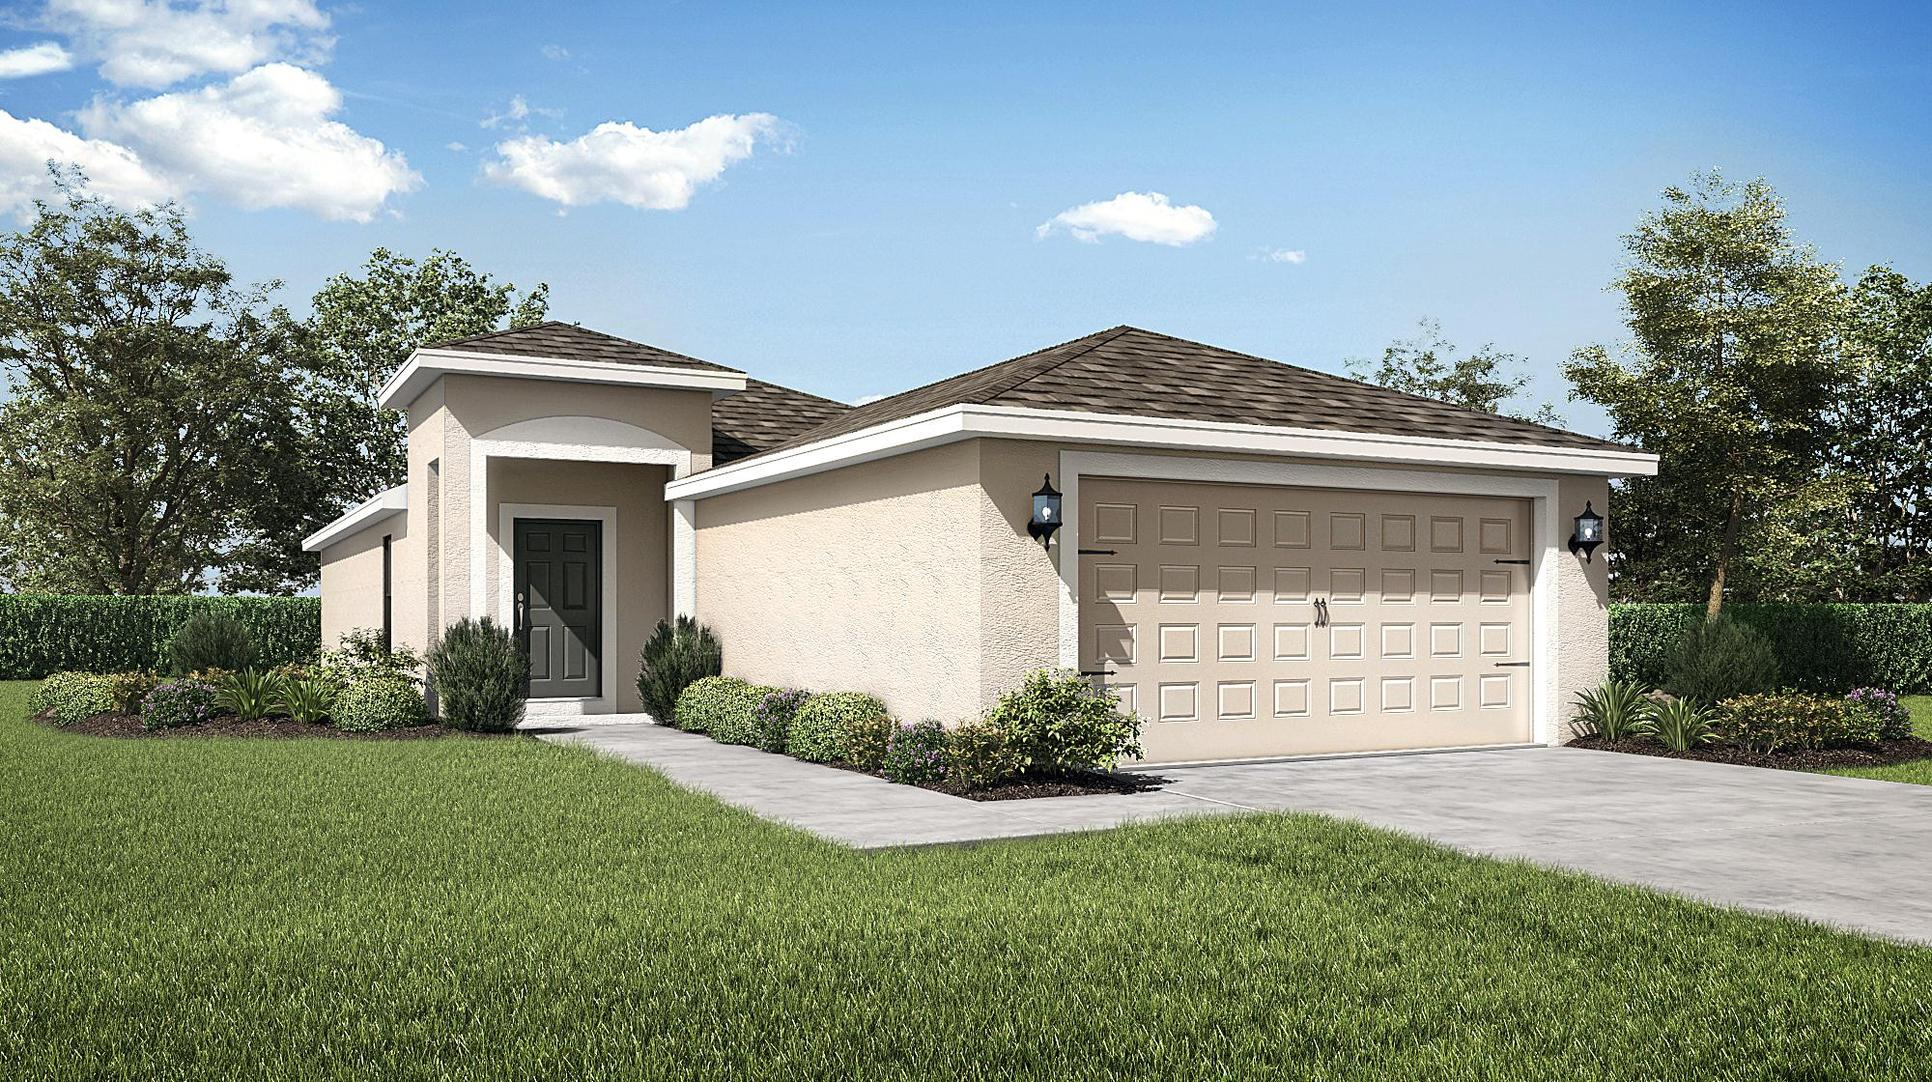 The Bahia by LGI Homes:Loaded with curb appeal, the Bahia at Kensington View offers an abundance of high-value upgrades